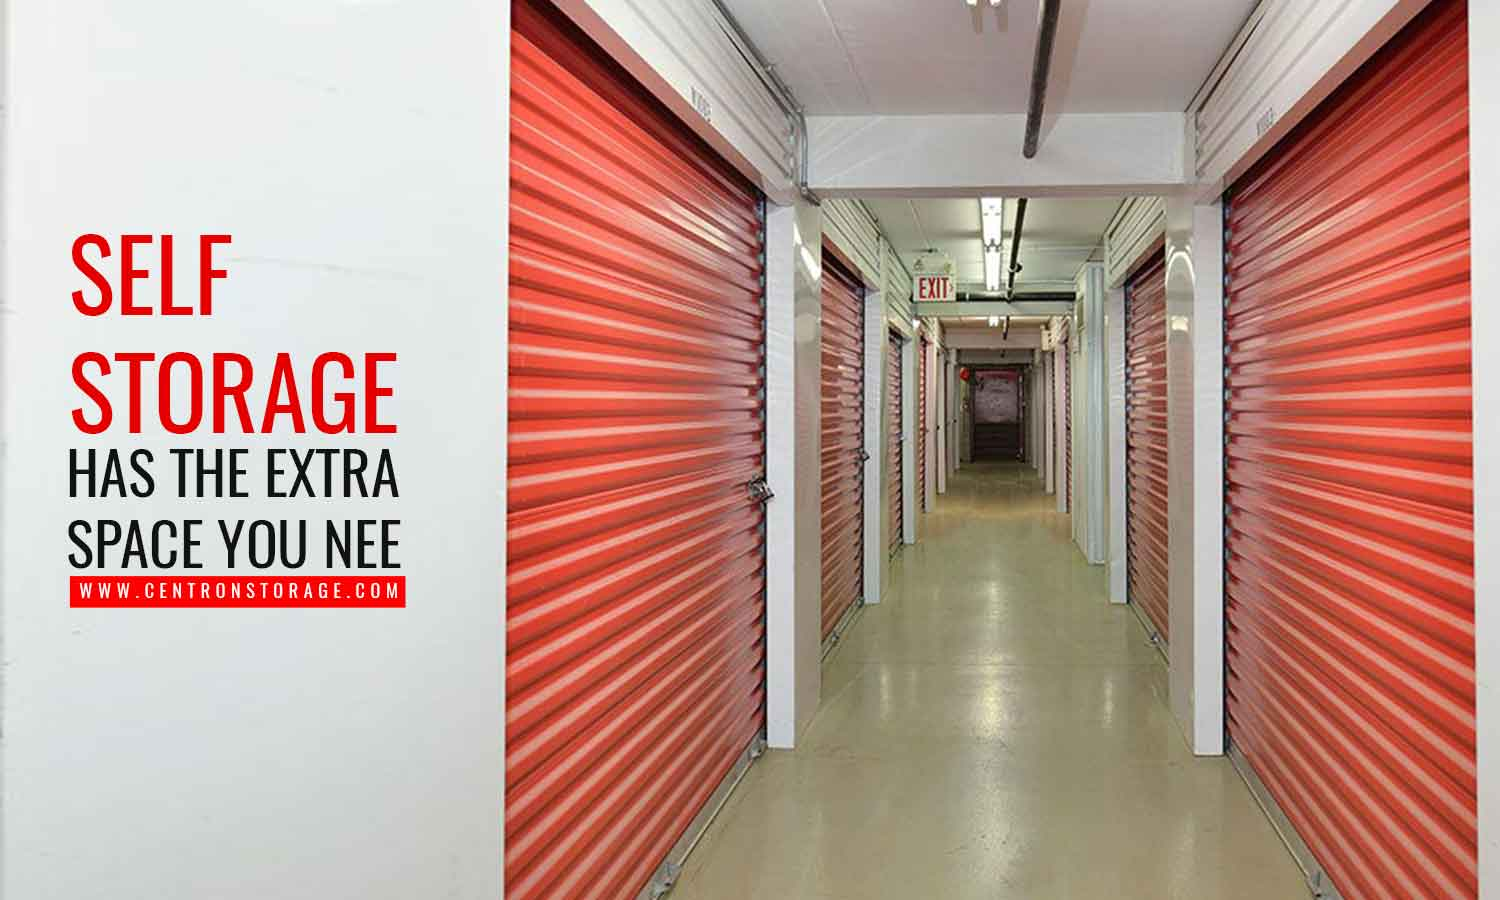 Self Storage has the extra space you need